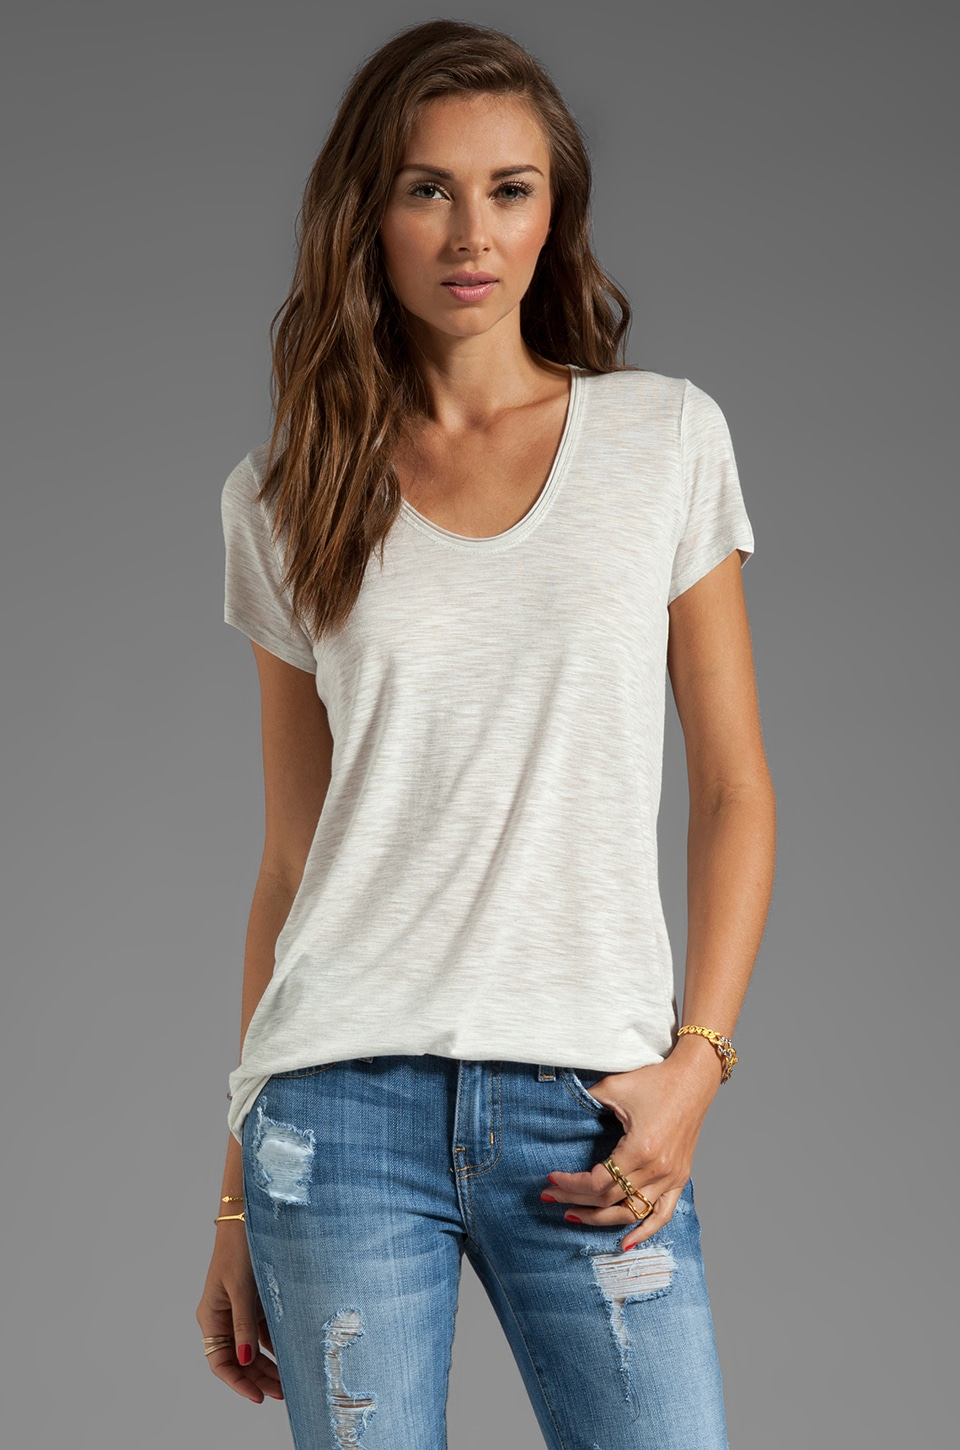 Vince Short Sleeve Rolled V-Neck Tee in White